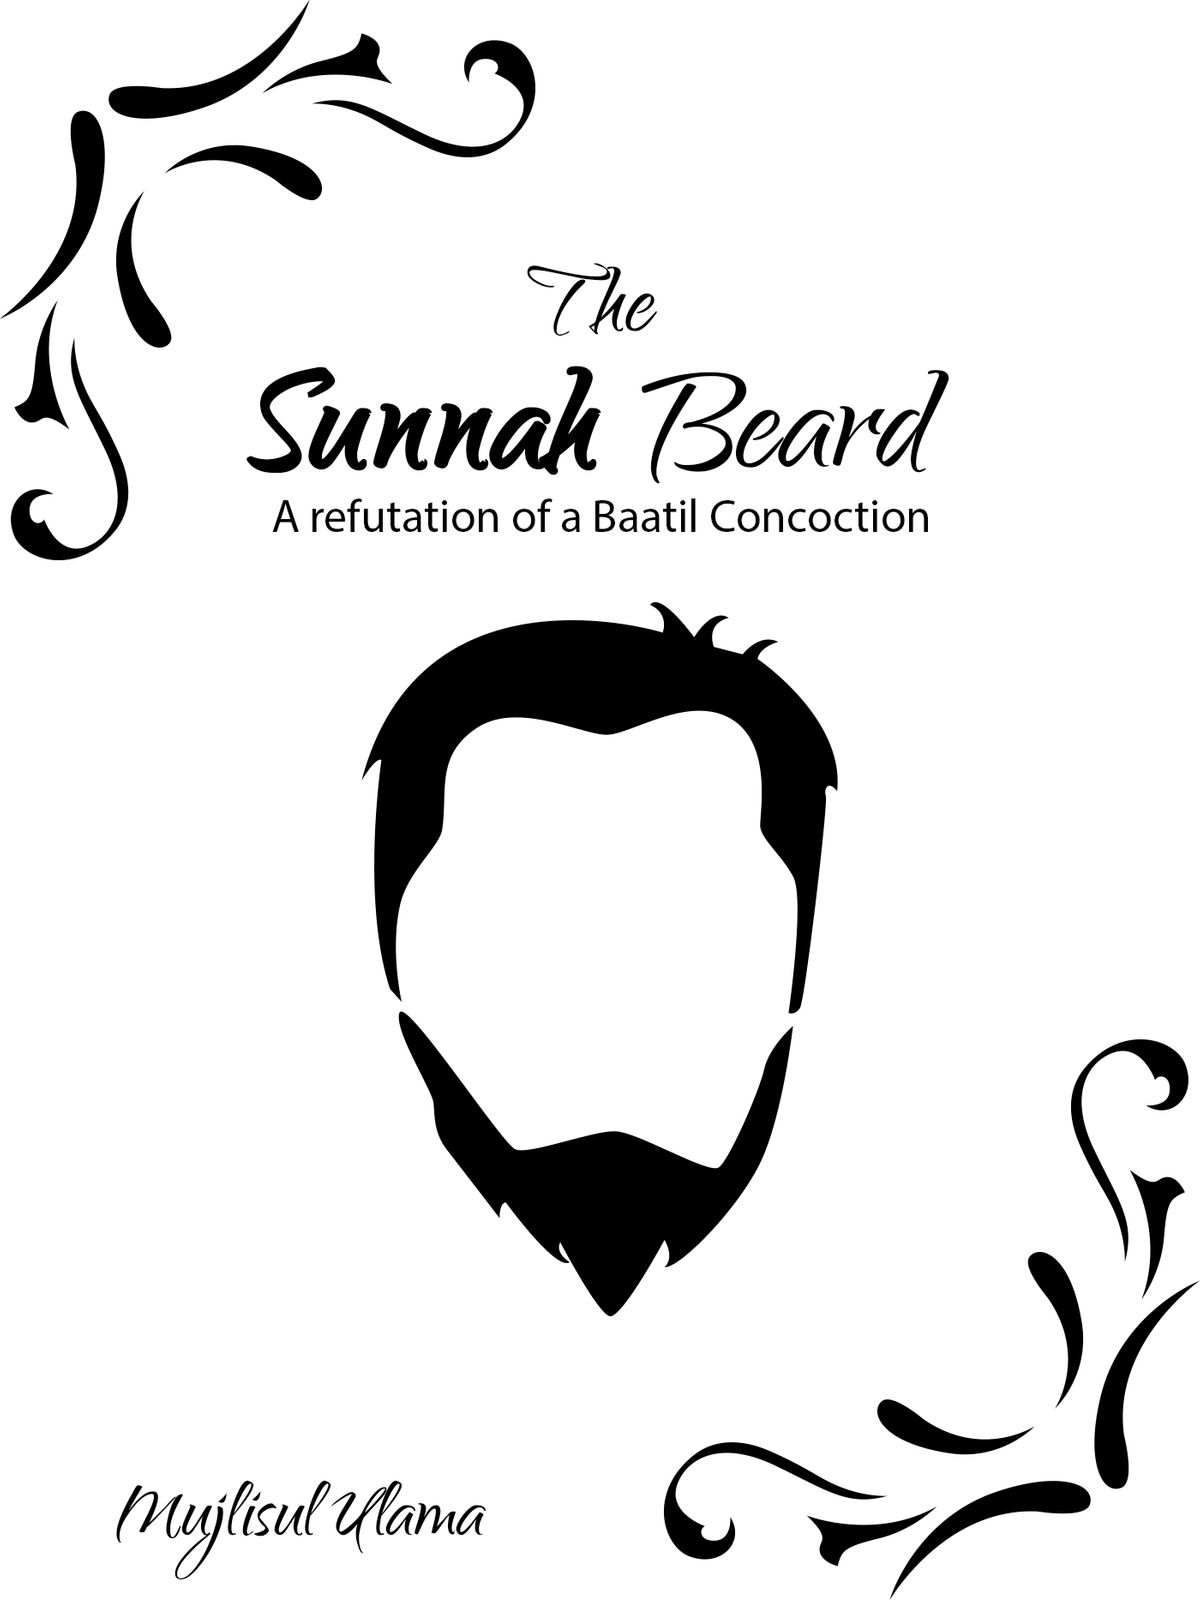 banner freeuse download Beard clipart sunnah. The a refutation of